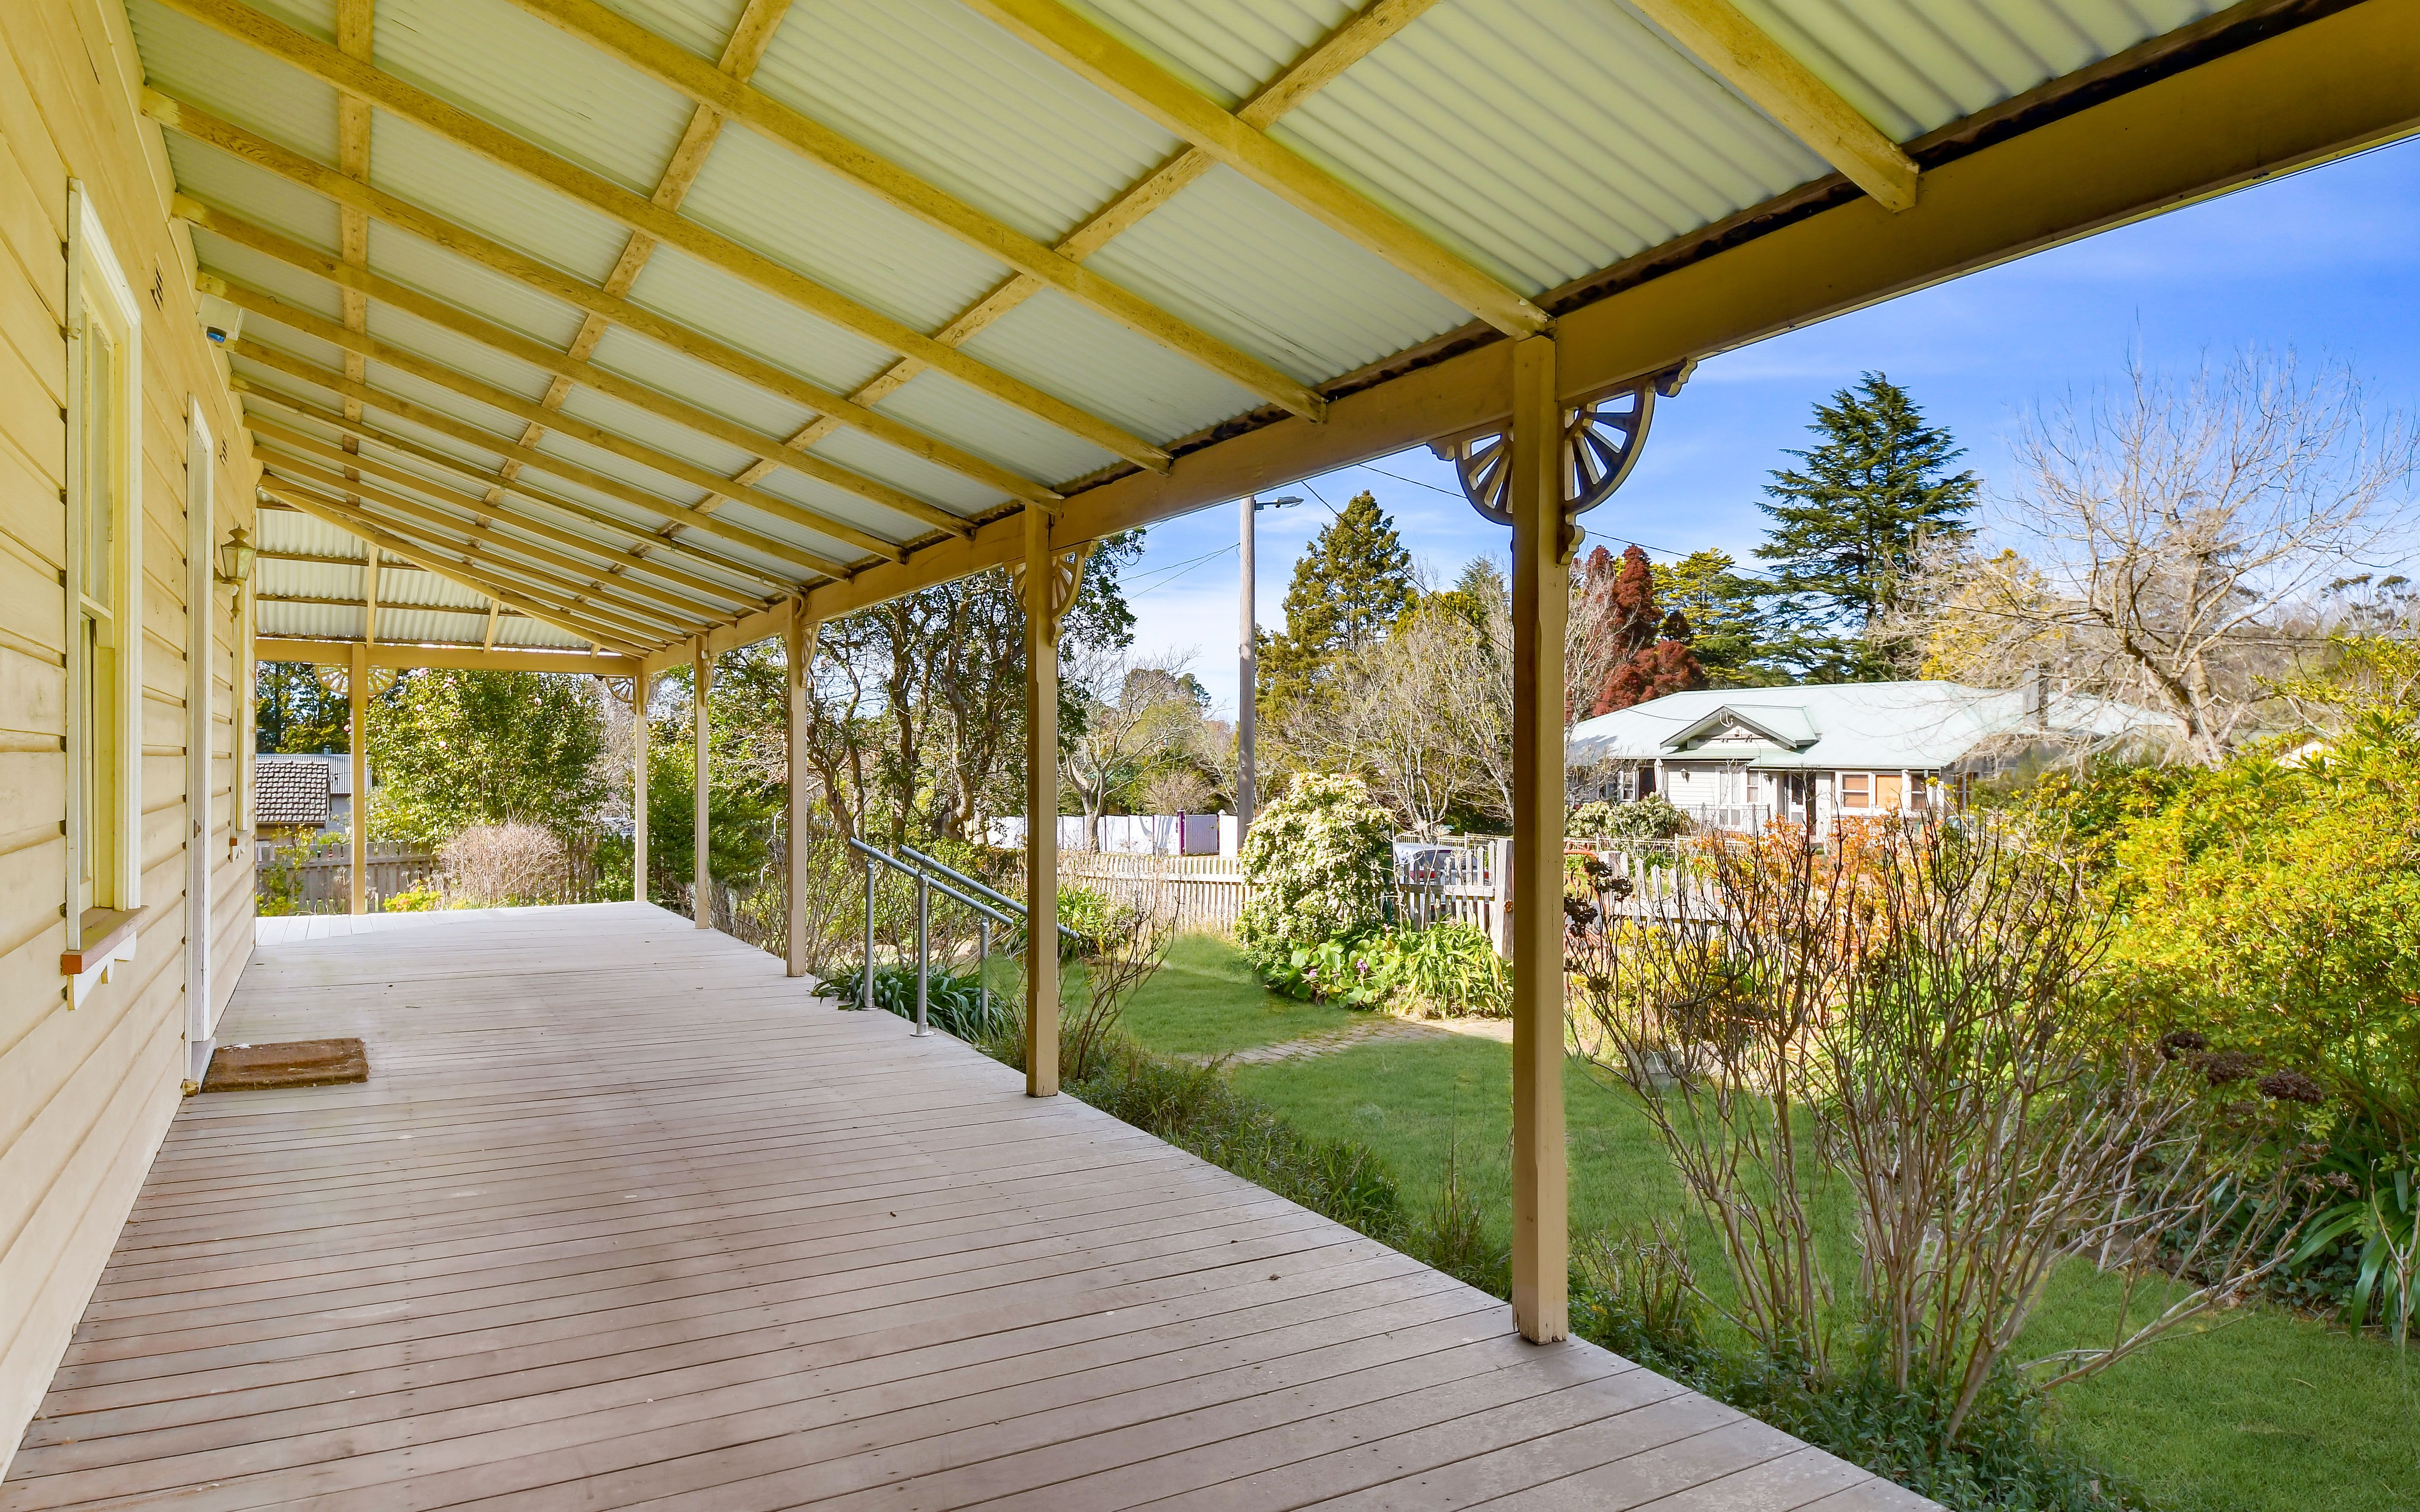 71 Backhouse Street Wentworth Falls 2782